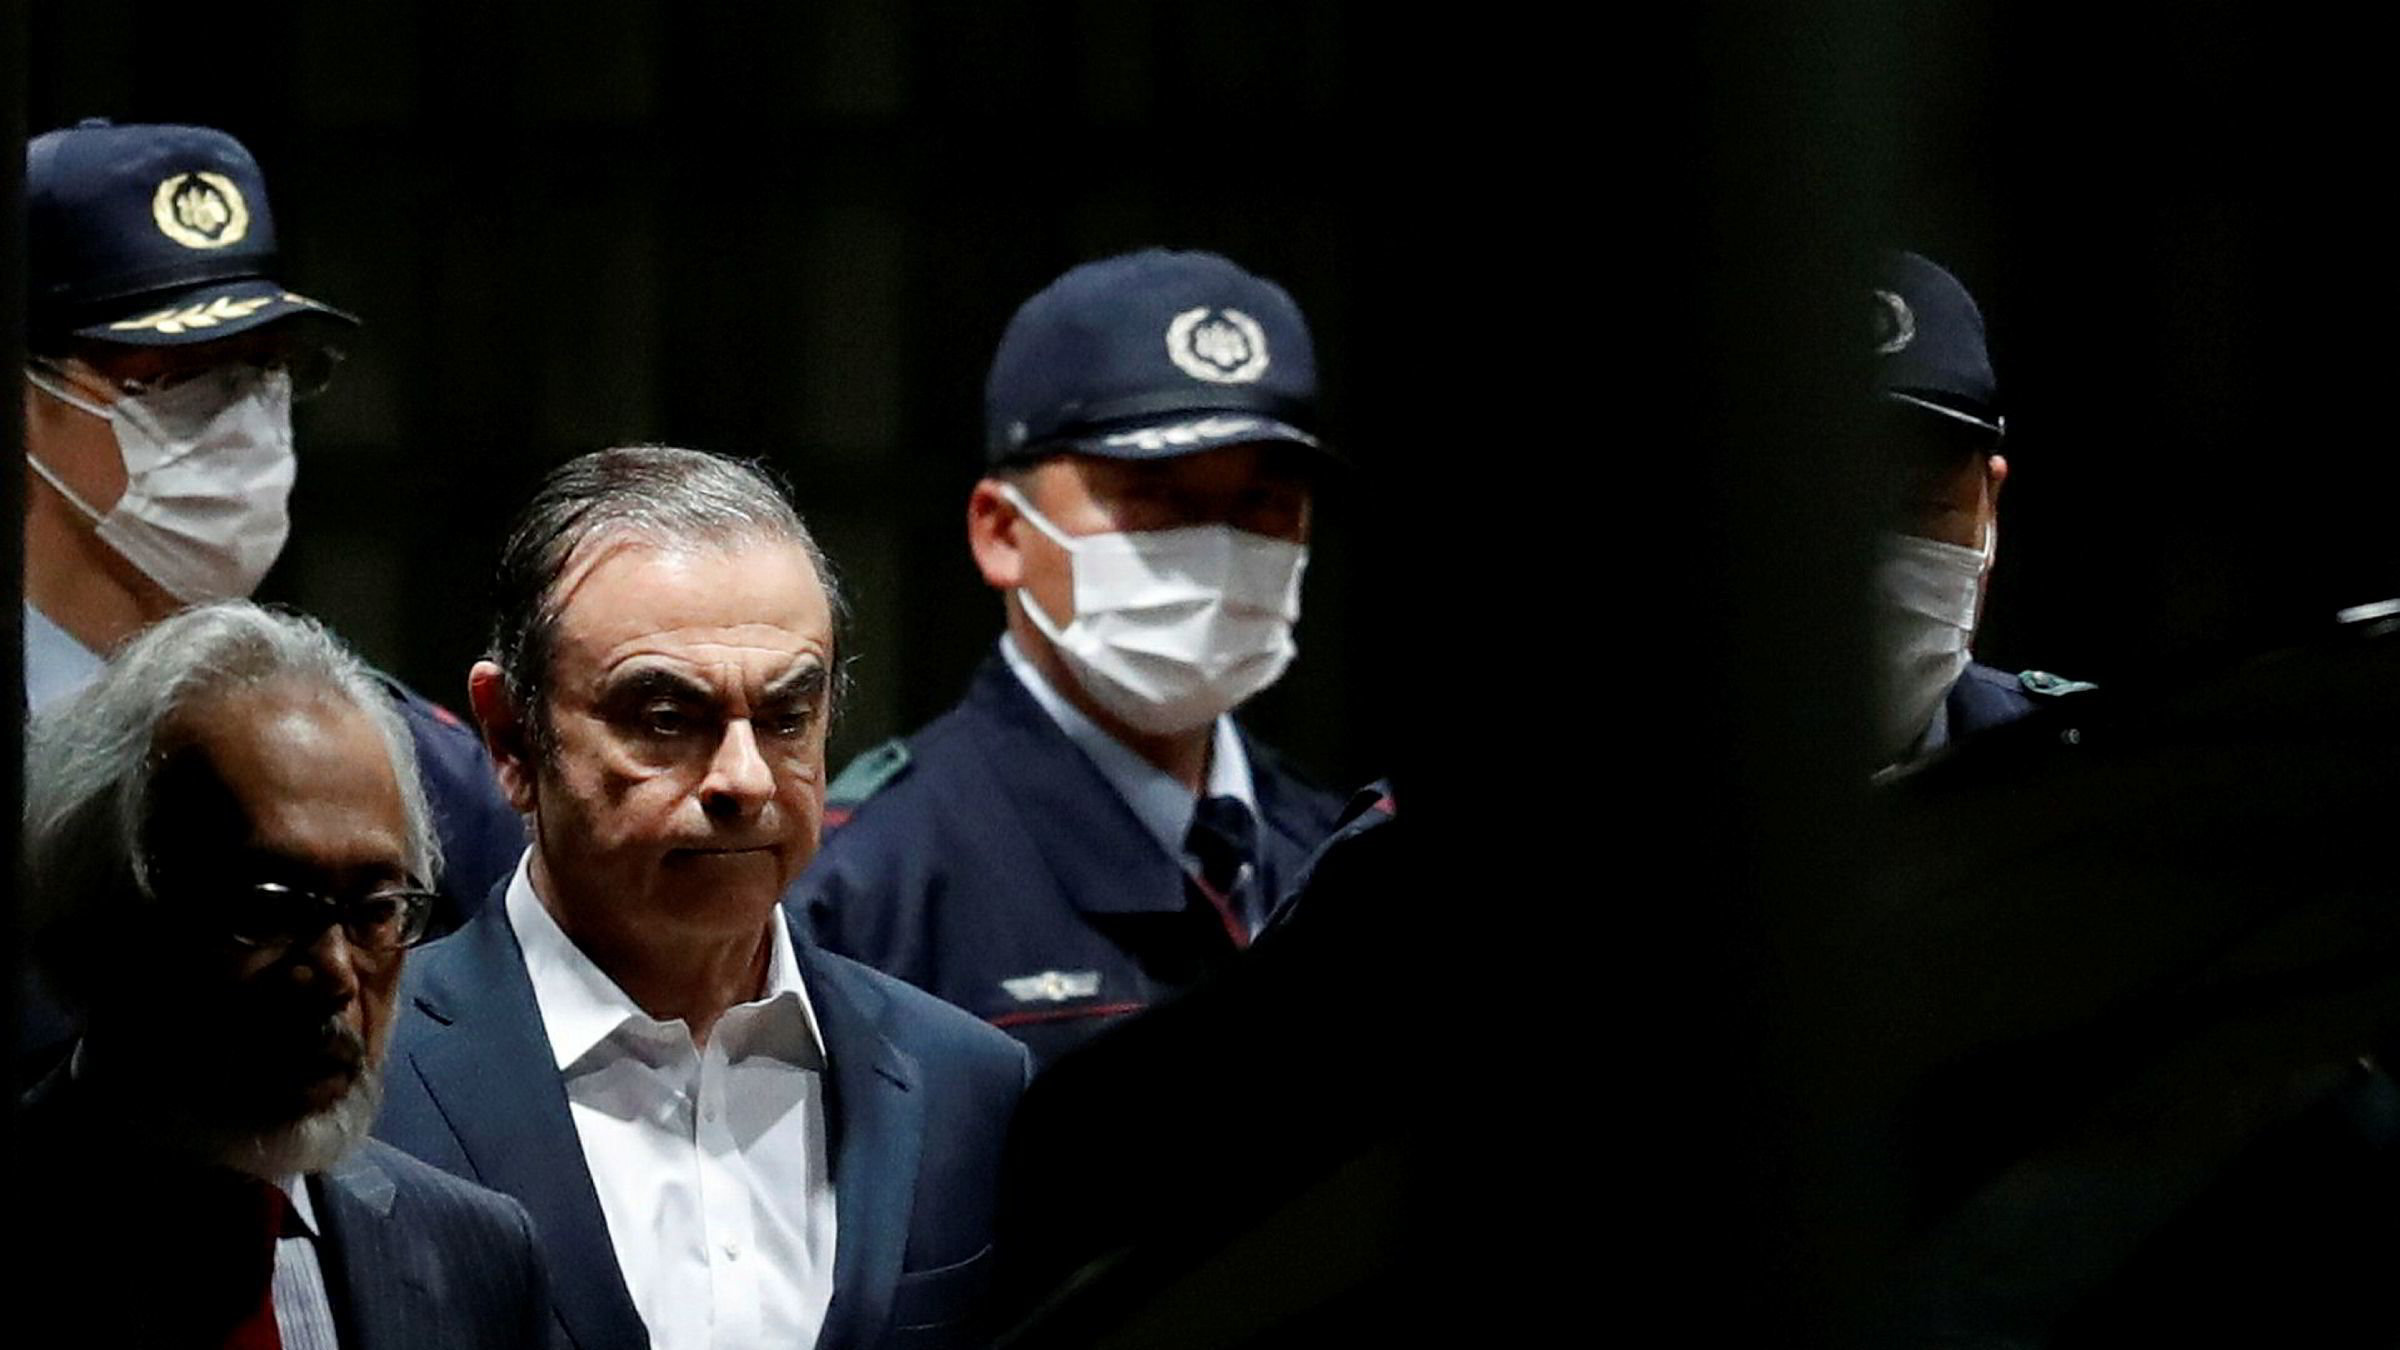 Former Nissan Motor Chariman Carlos Ghosn leaves the Tokyo Detention House in Tokyo, Japan April 25, 2019. REUTERS/Issei Kato